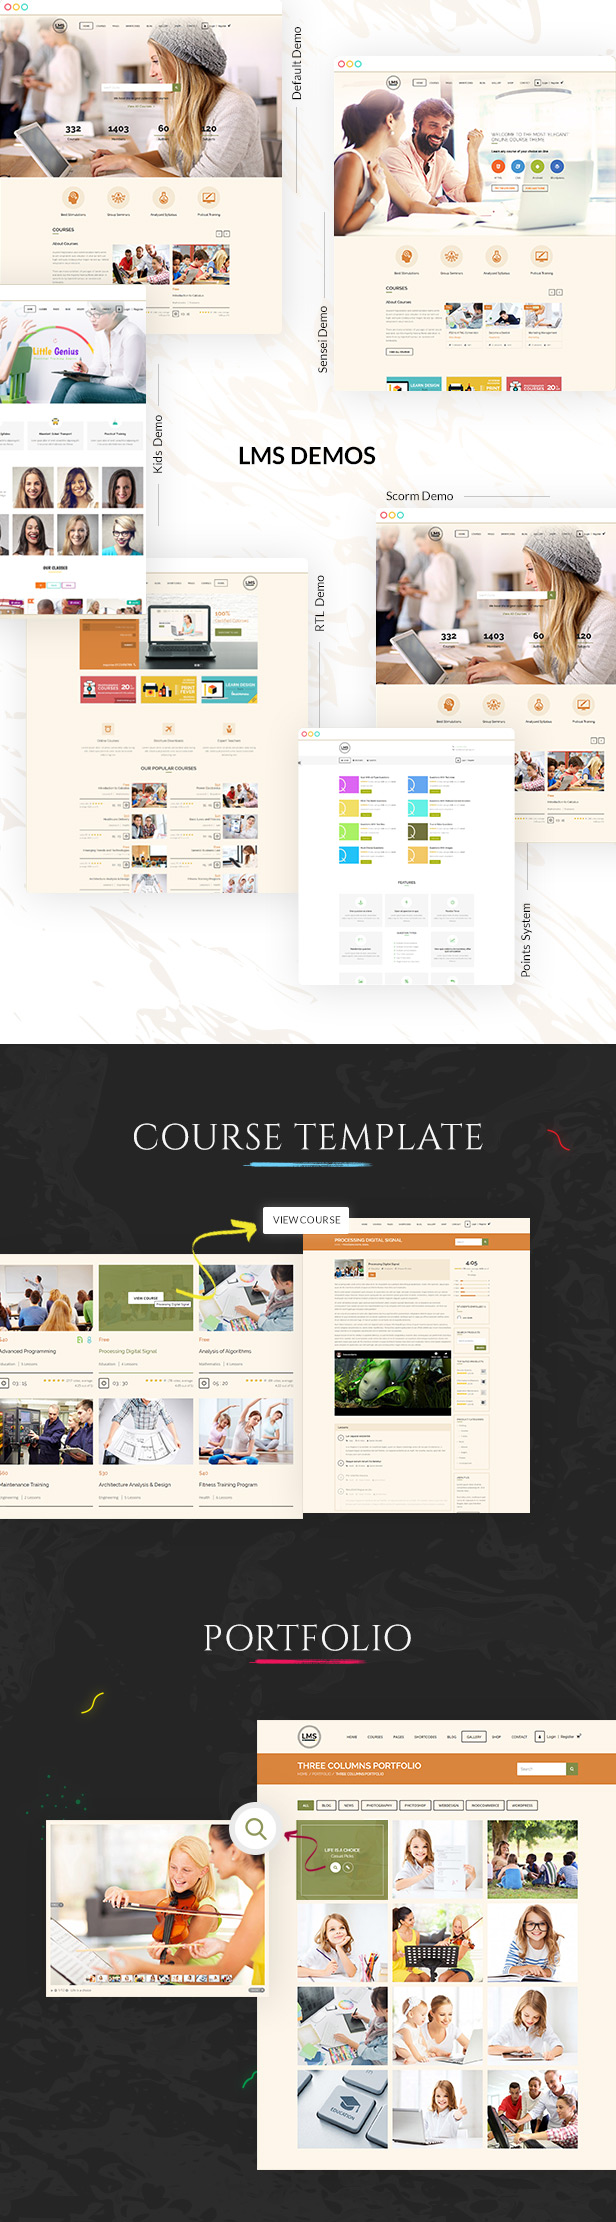 LMS WordPress Theme - 4